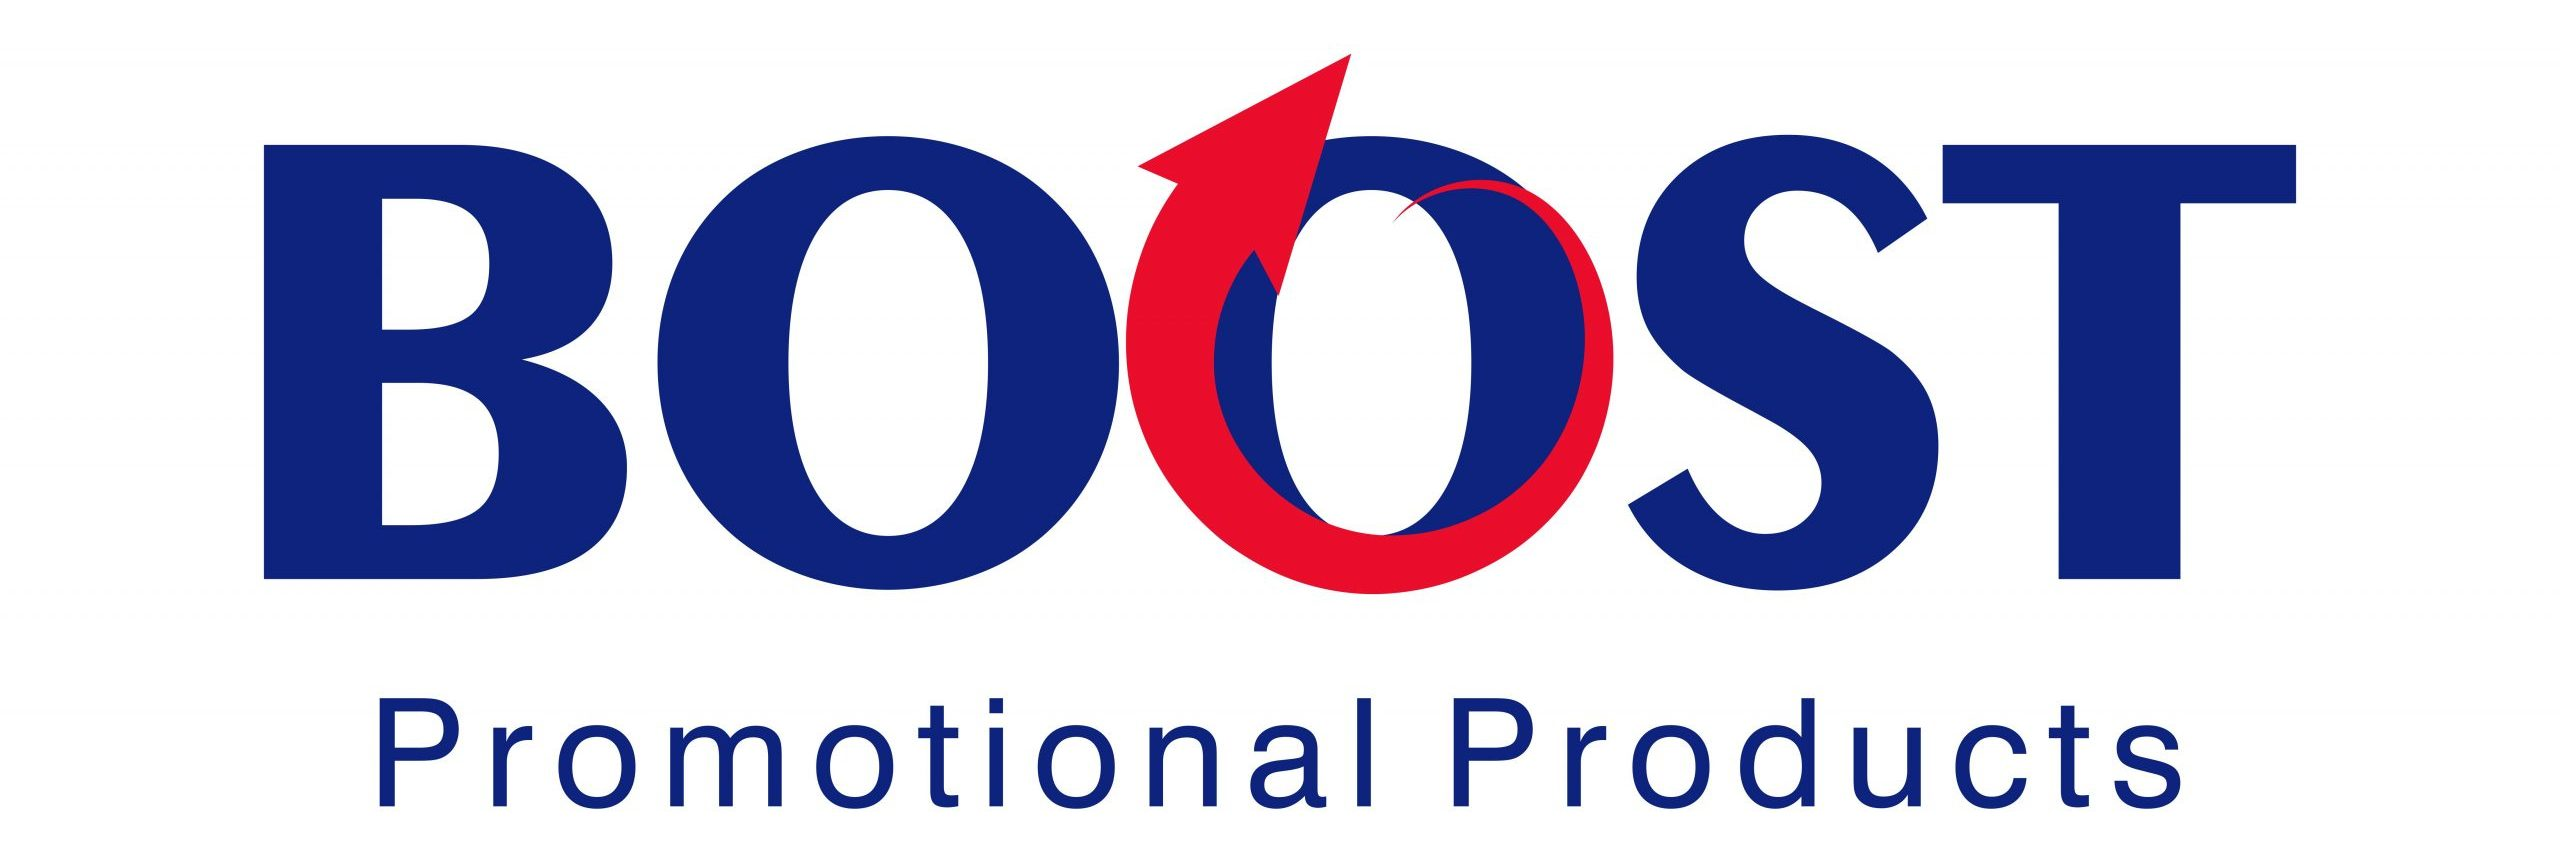 Boost Promotional Products